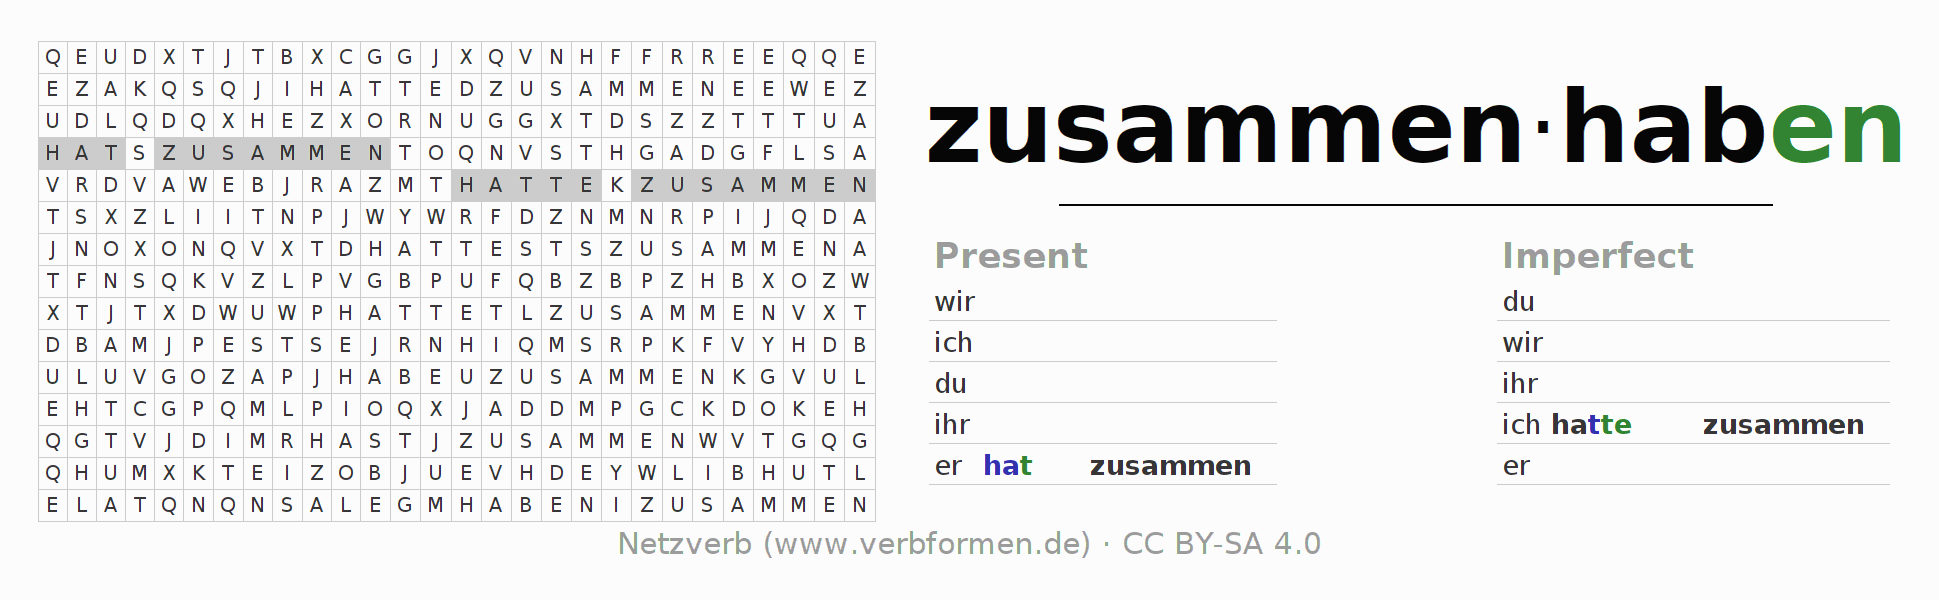 Word search puzzle for the conjugation of the verb zusammenhaben